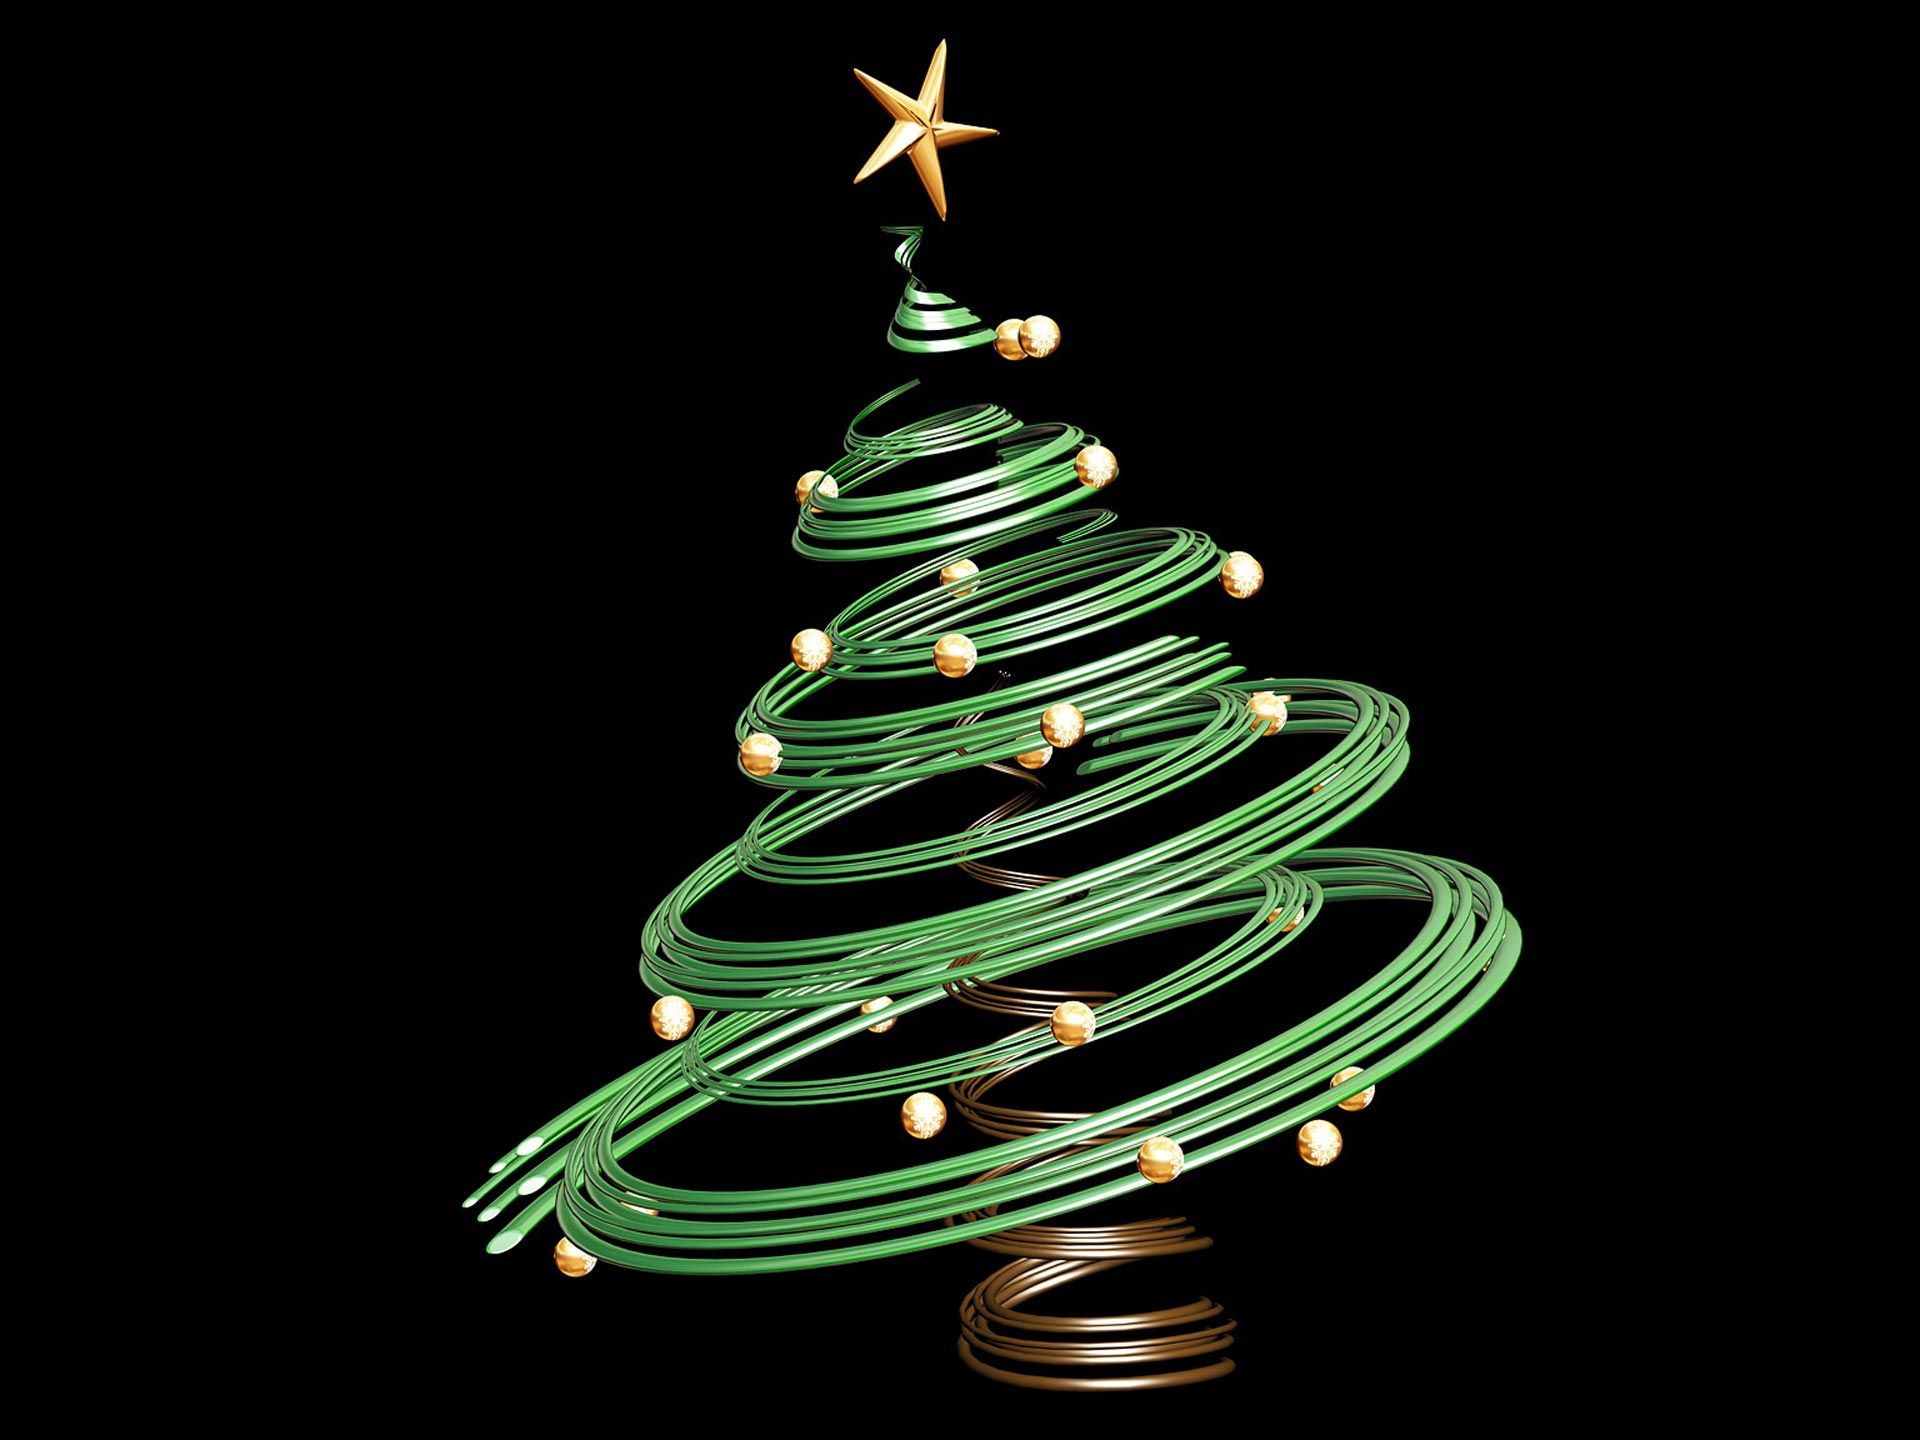 Explore 3D Tree, Christmas Greetings, And More